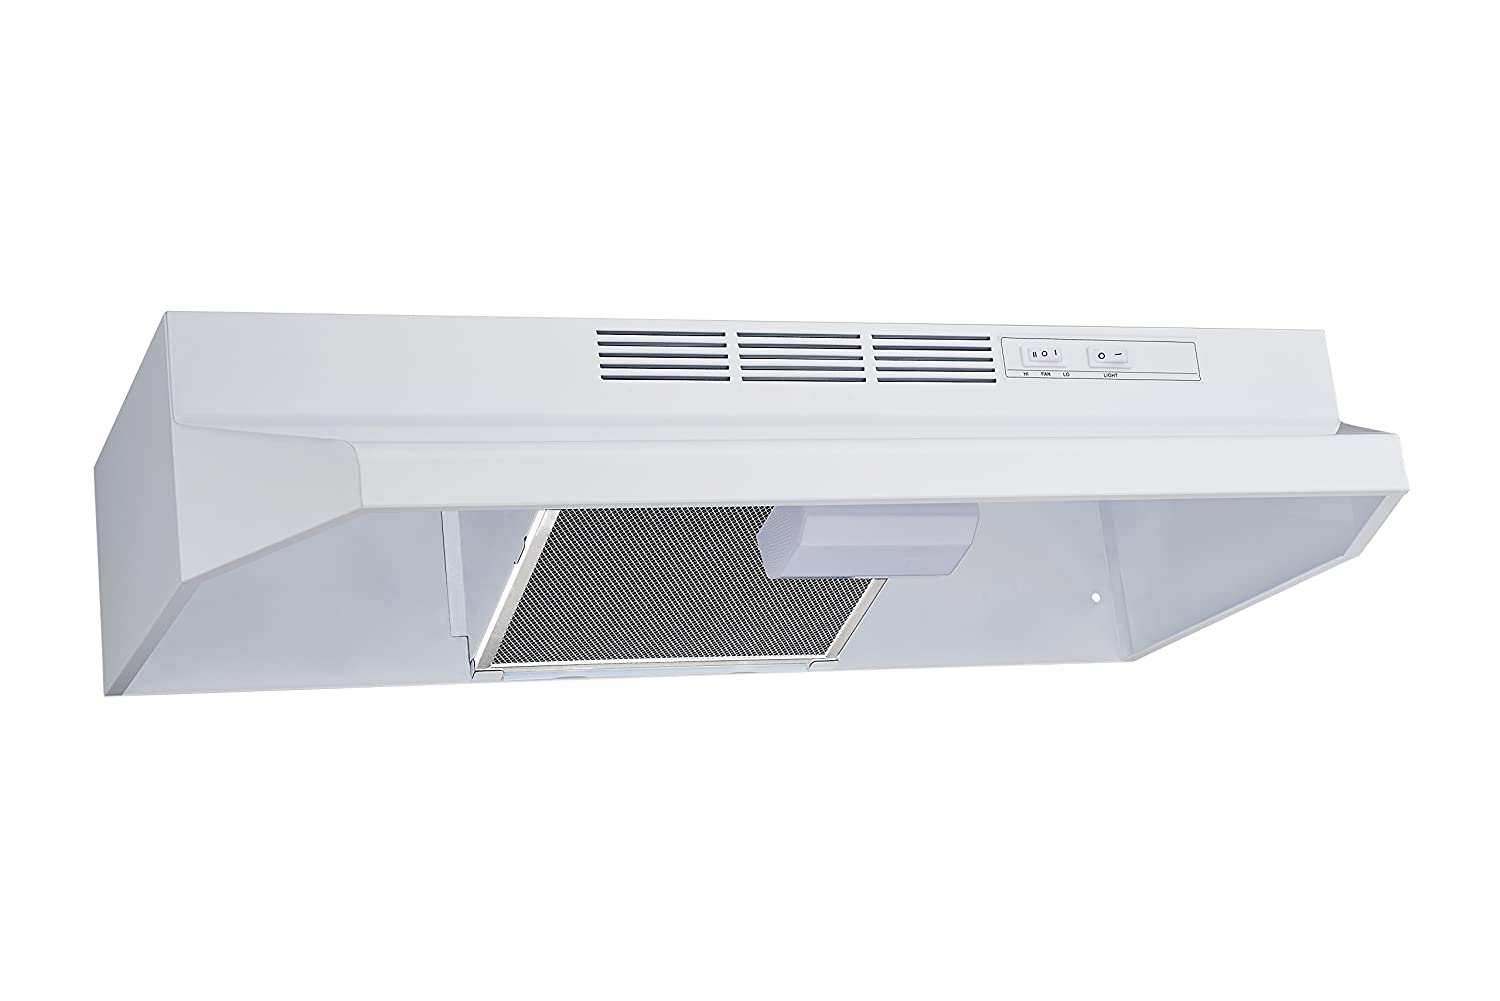 Winflo New 30 Ductless//Non-Ducted Under Cabinet Range Hood in White Color with Mesh Charcoal Filter